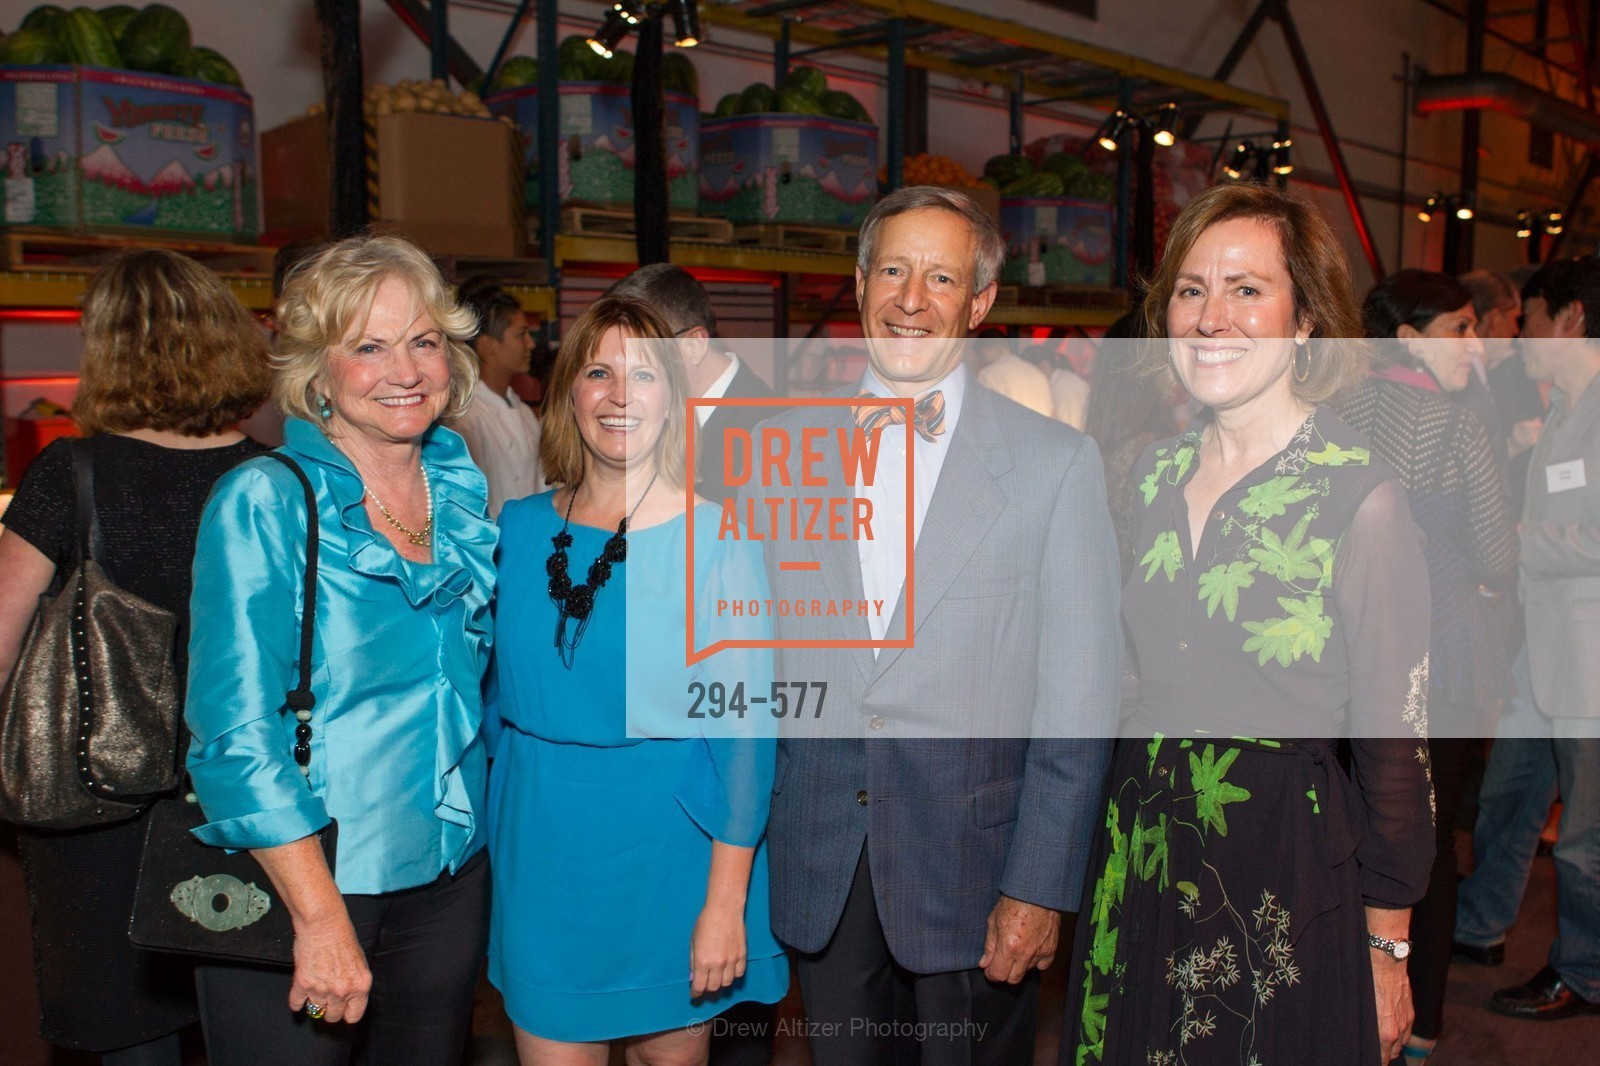 Kiki Pescatello, Jennifer Levy, Jack Bertges, JoAnn Bertges, SF-MARIN FOOD BANK One Big Table Gala, US, September 27th, 2014,Drew Altizer, Drew Altizer Photography, full-service event agency, private events, San Francisco photographer, photographer California